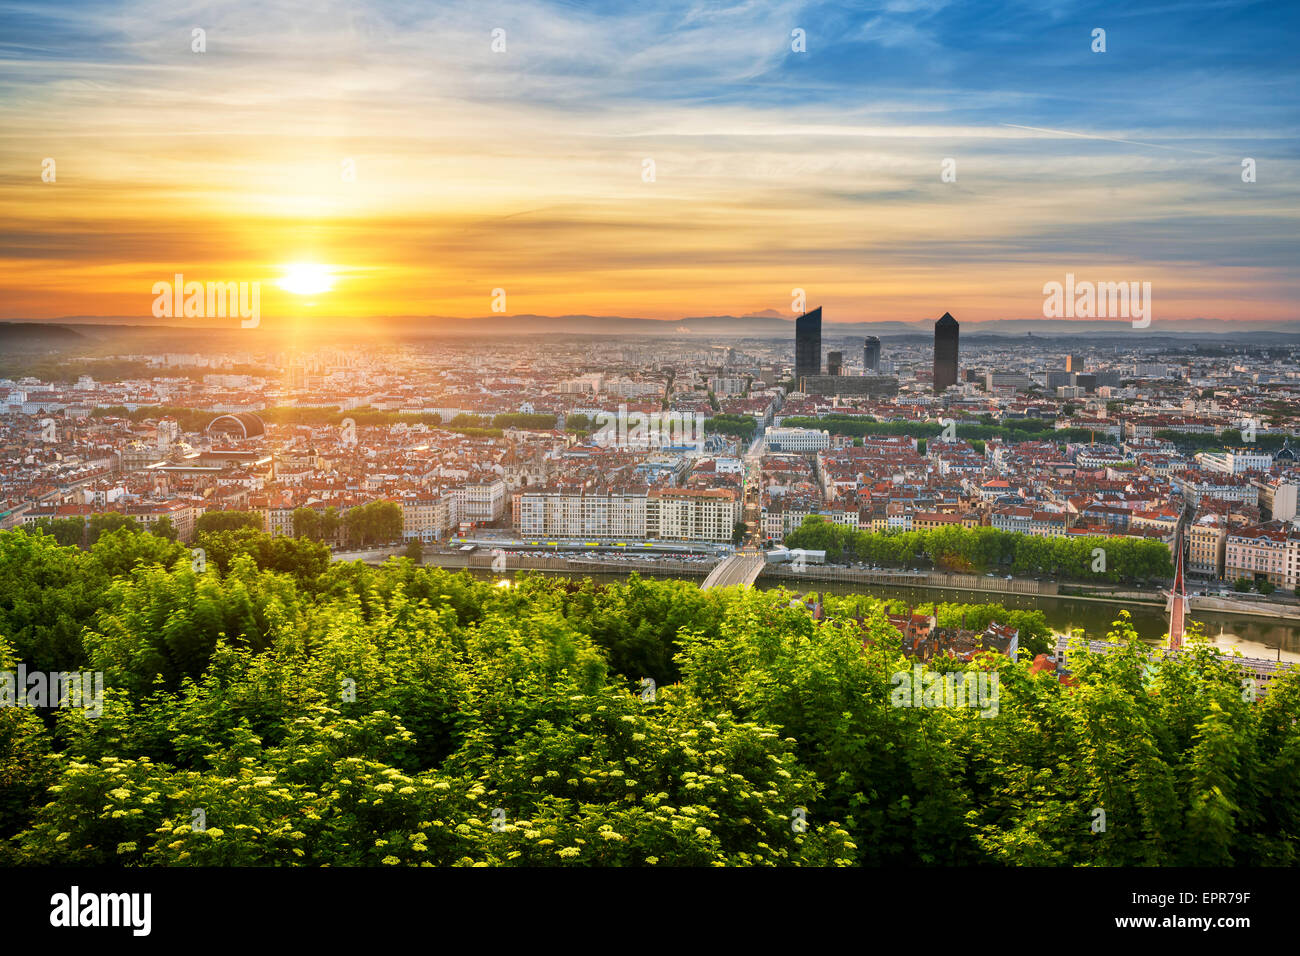 View of Lyon at sunrise, France. - Stock Image